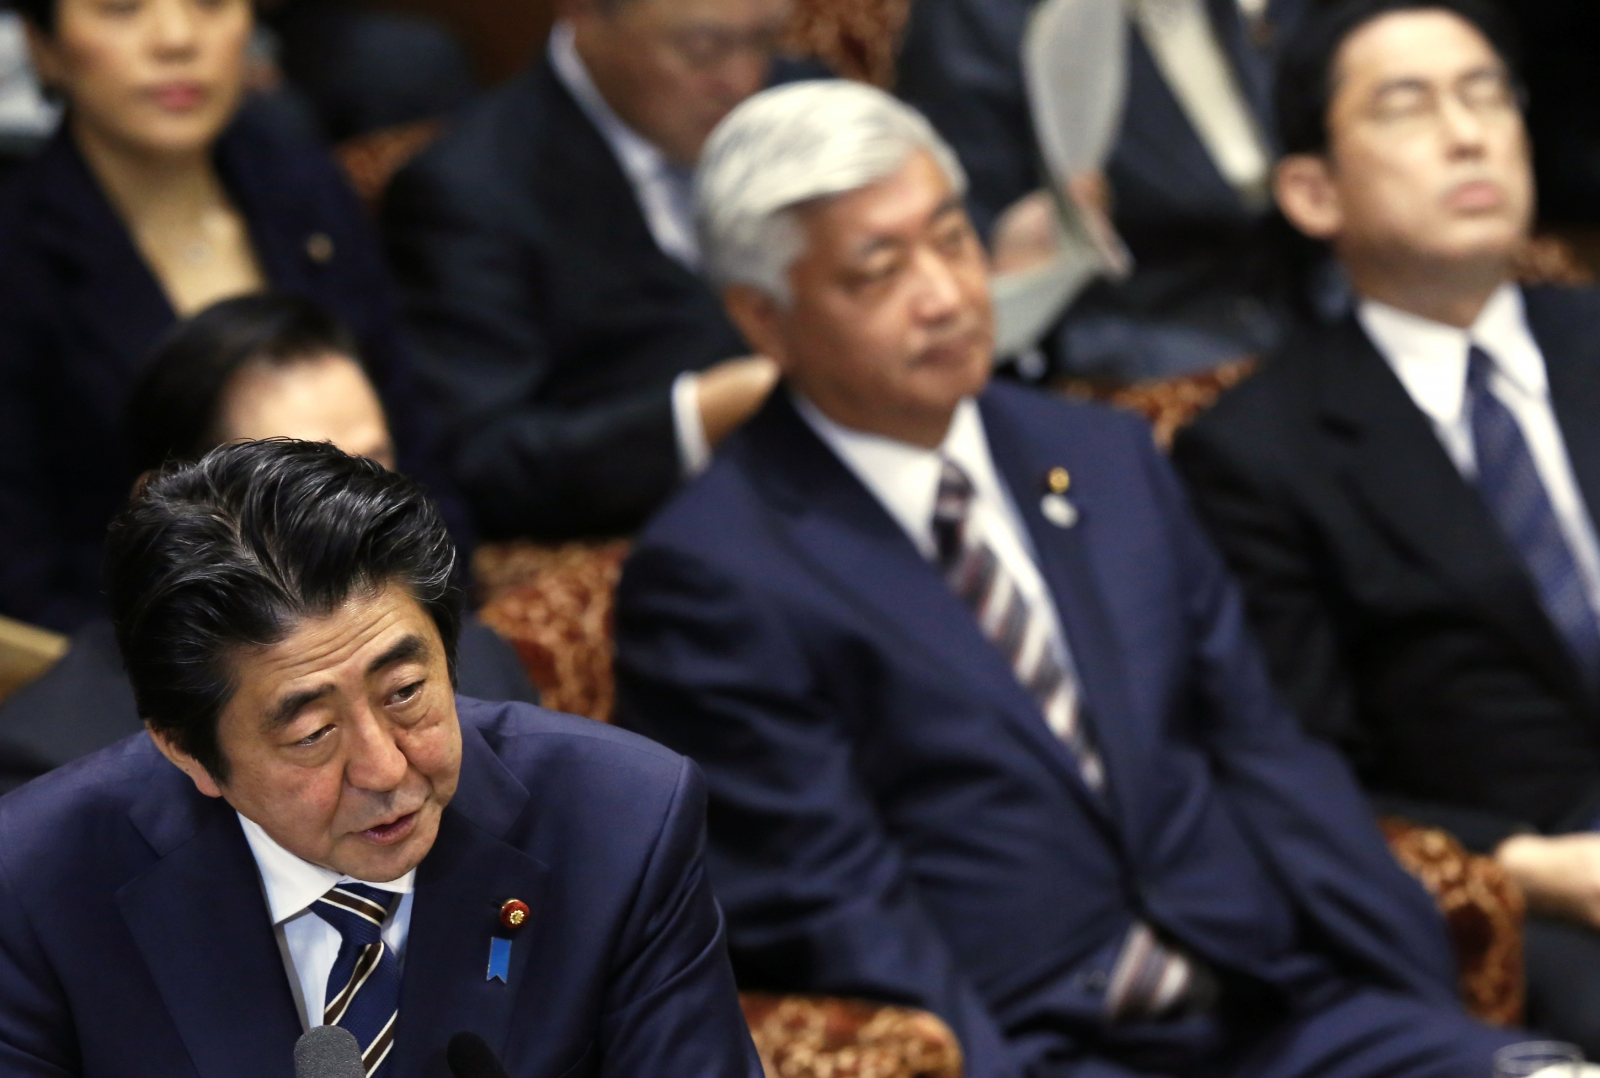 Japan: Abe seeks major shift in military policies after hostages killing